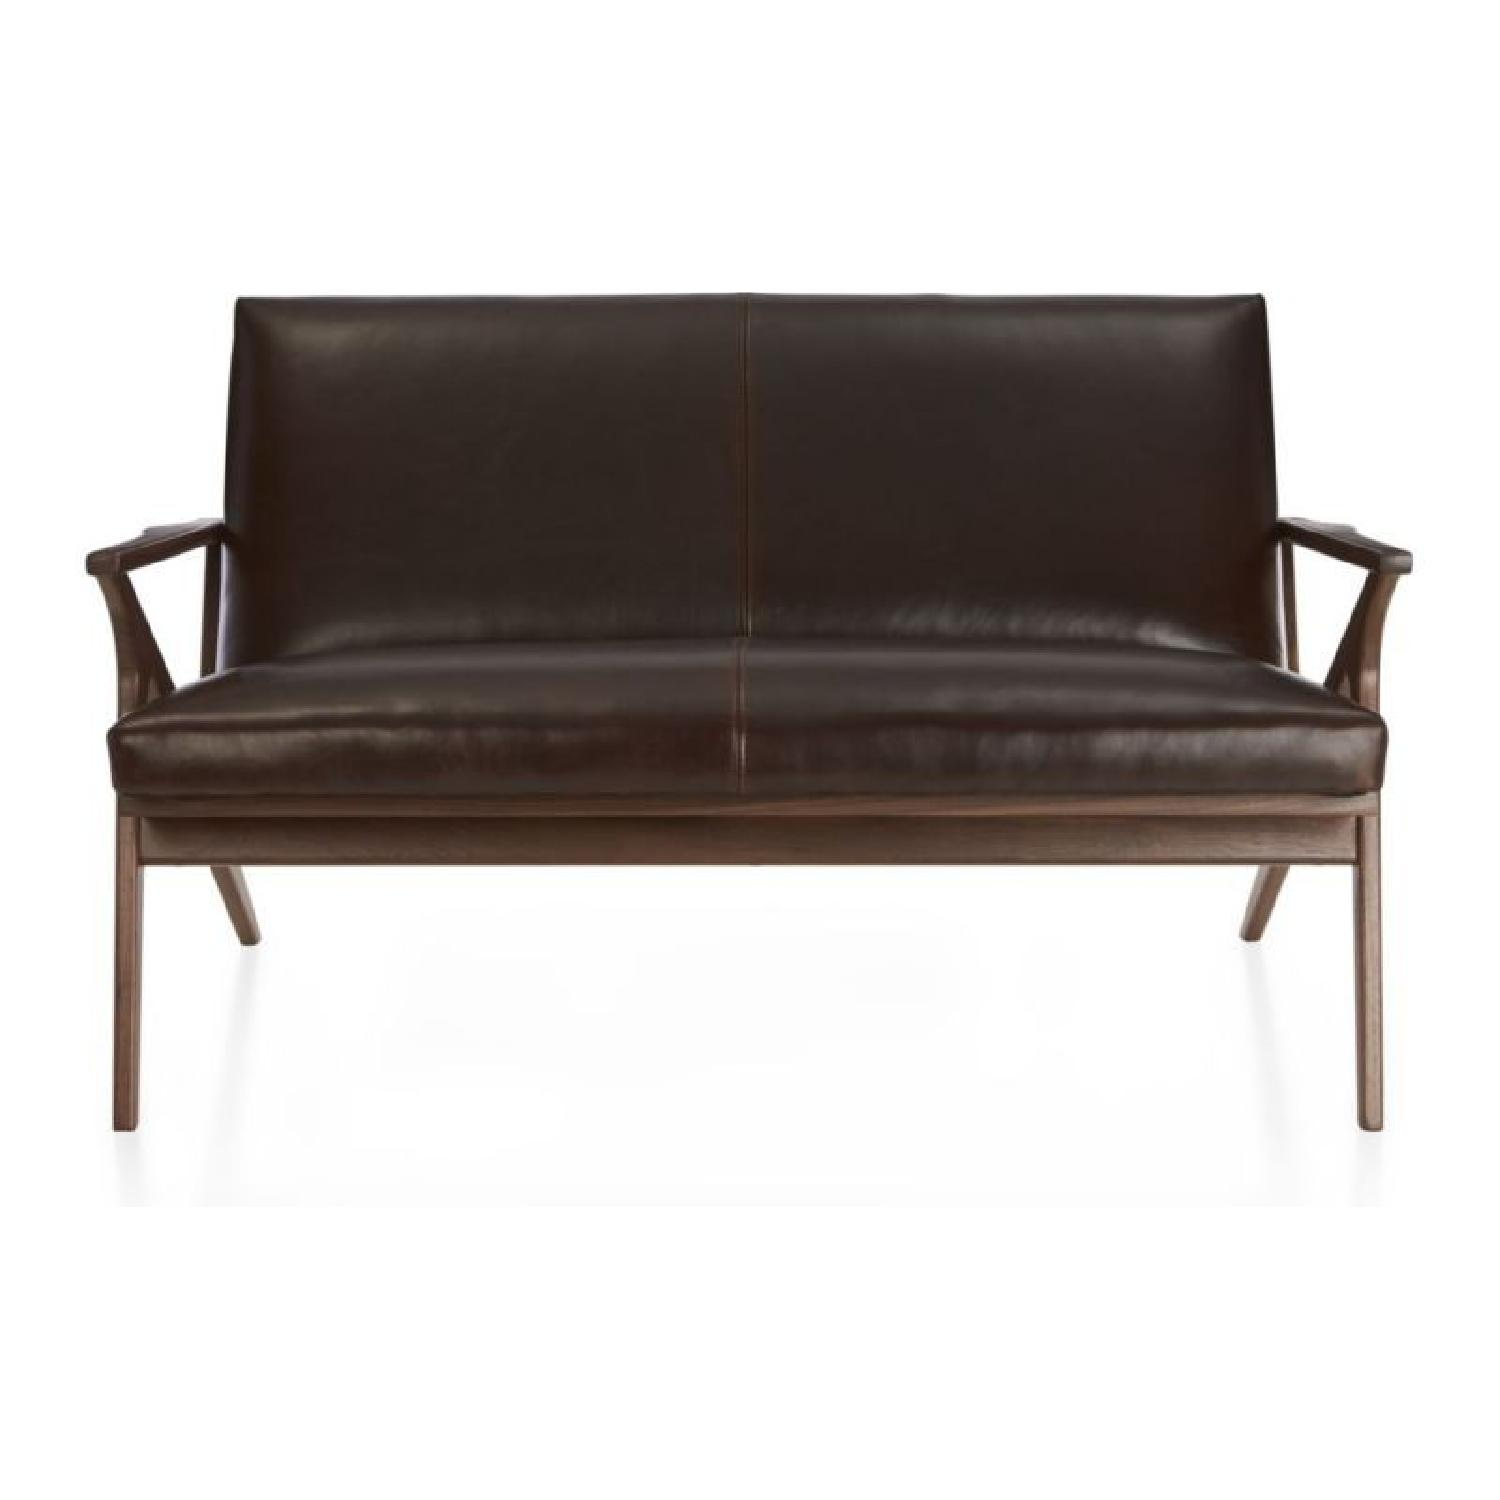 Crate & Barrel Cavett Leather Loveseat